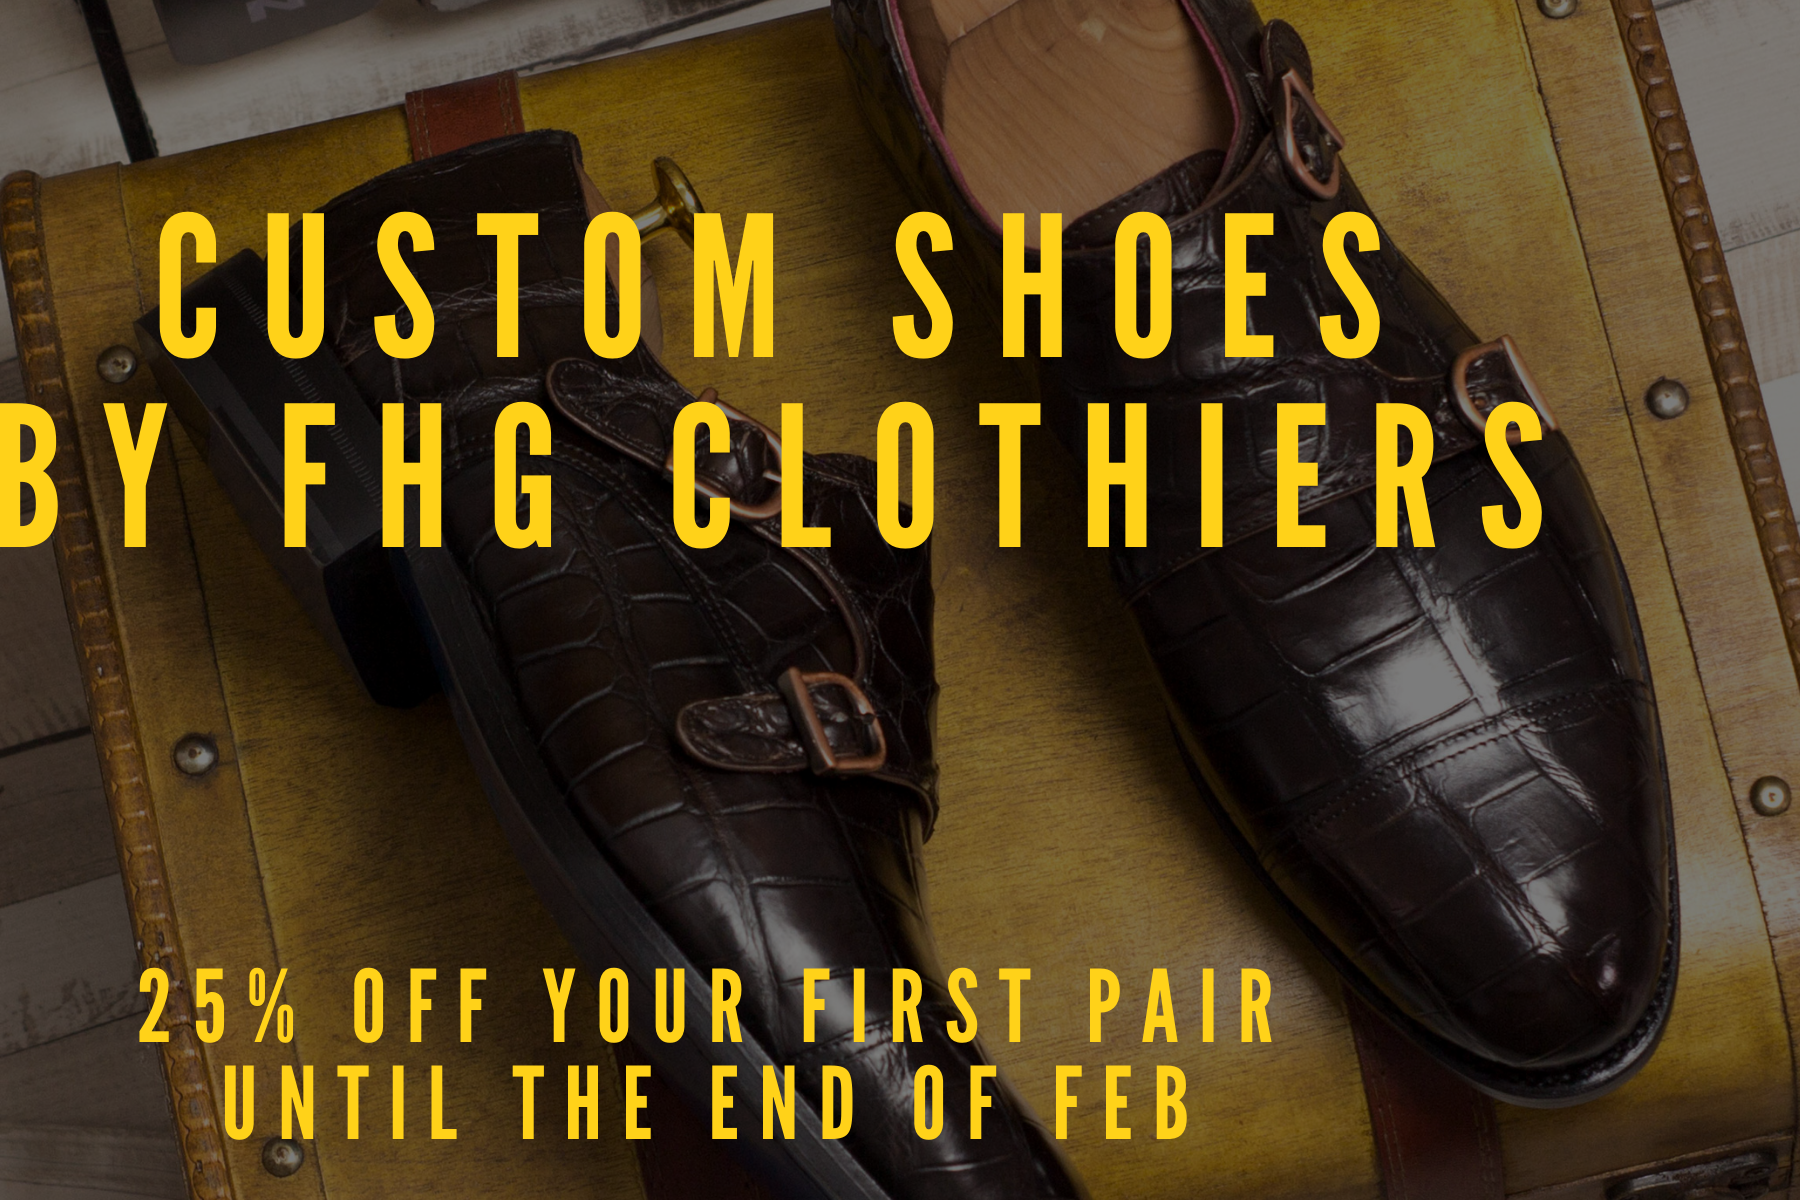 Custom Made Shoes from FHG Clothiers 25% Off Throughout January and February!